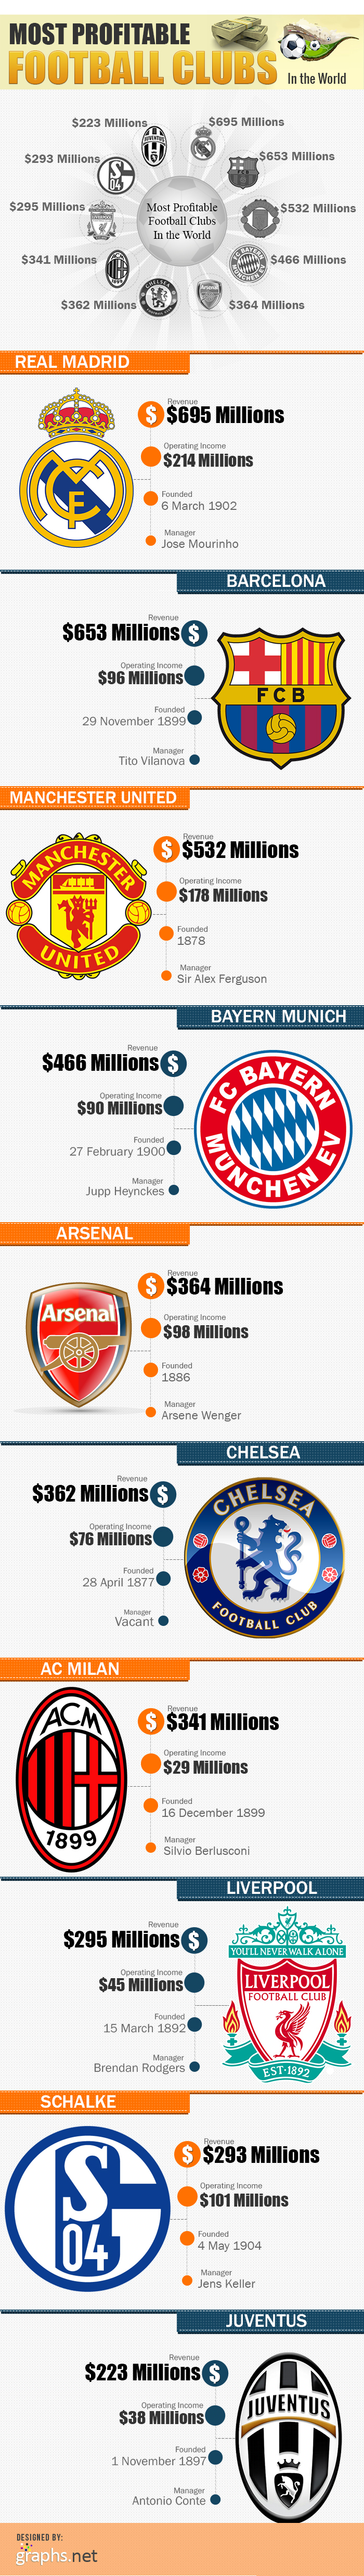 Most Profitable Football Clubs in the World